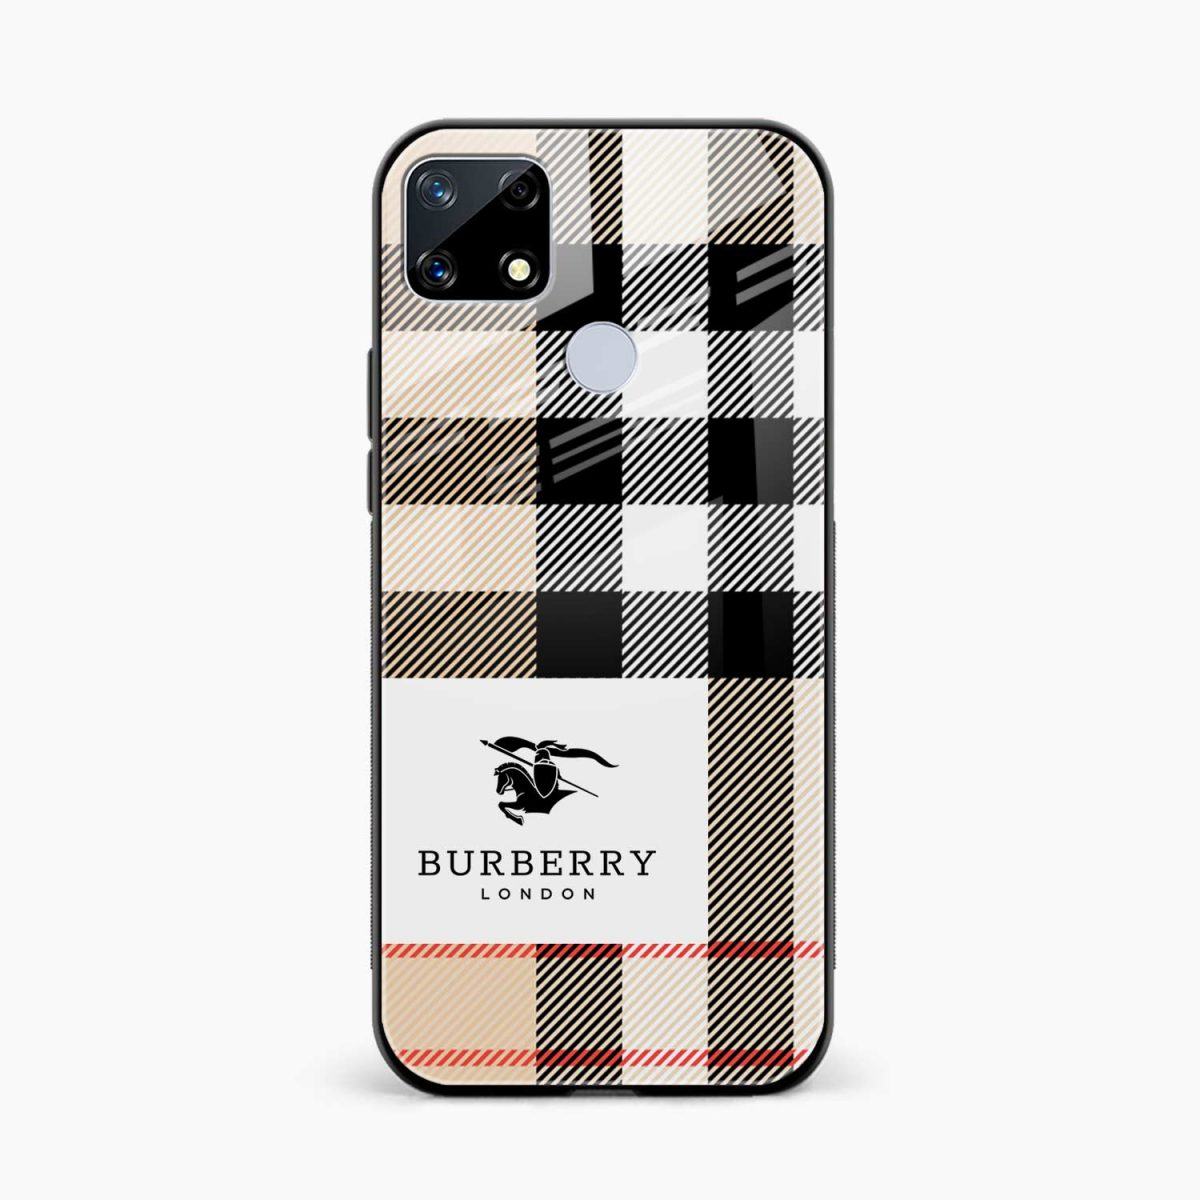 burberry cross lines pattern front view realme narzo 20 back cover 1